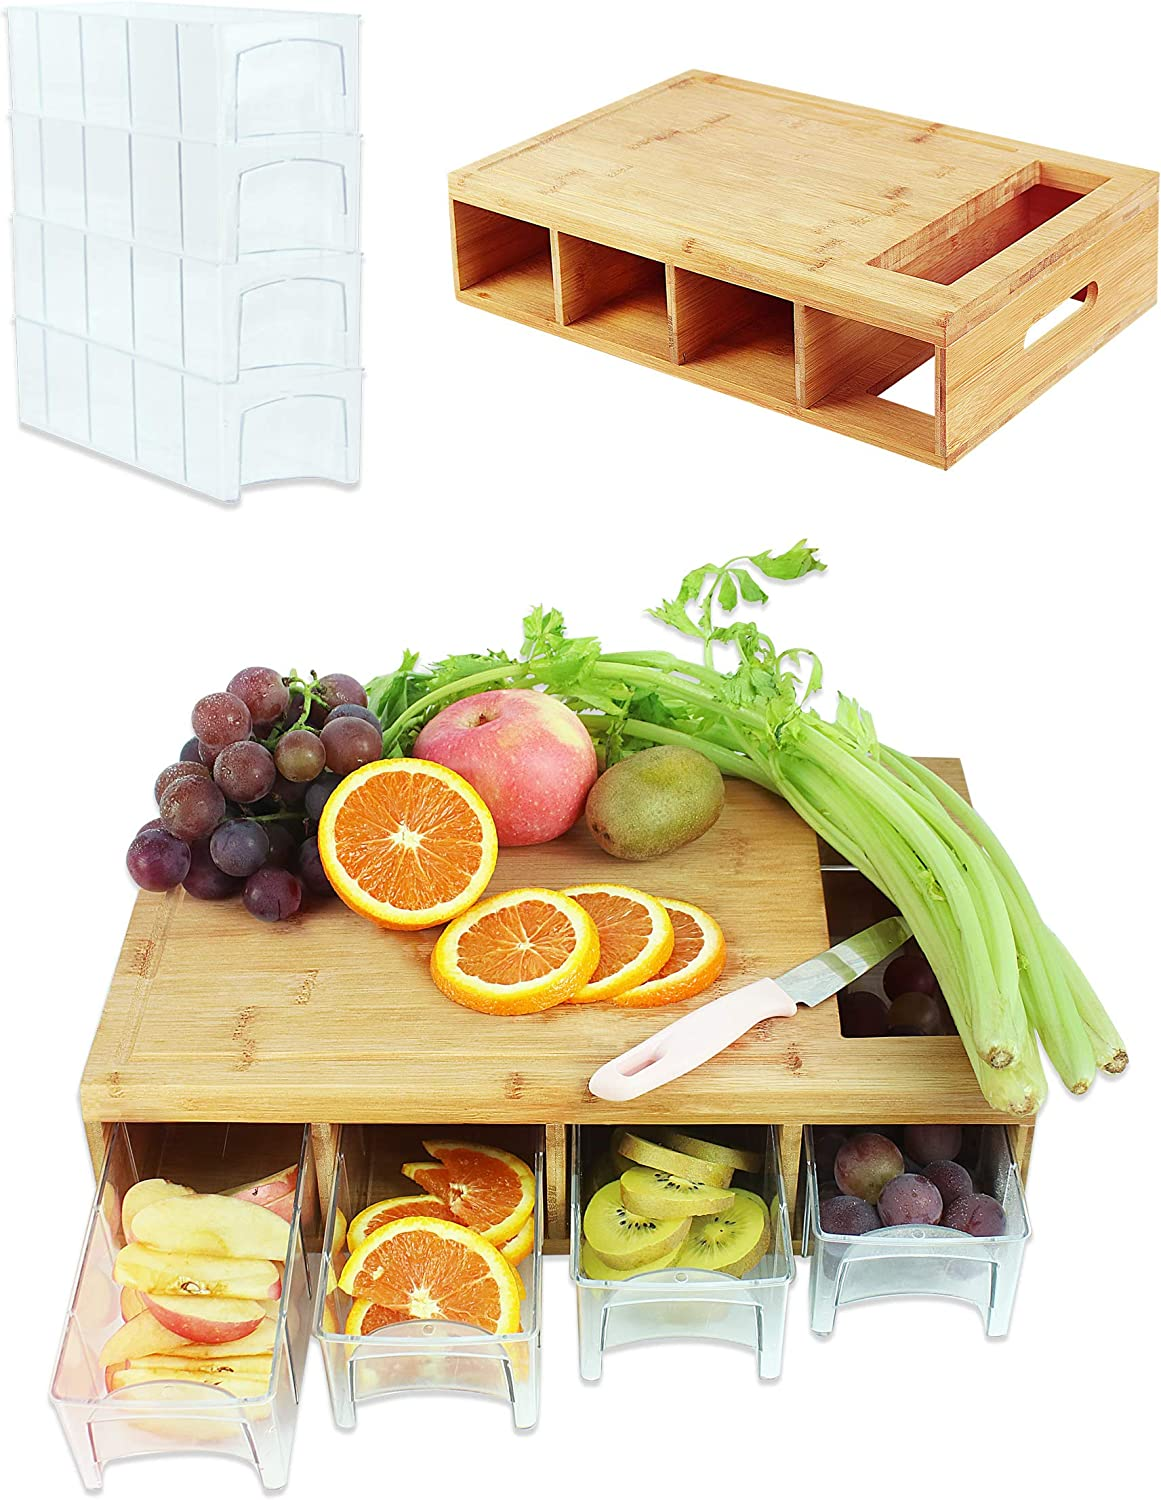 Bamboo Memphis Mall Cutting Board With Ranking TOP2 Trays Wood Contai Chopping with